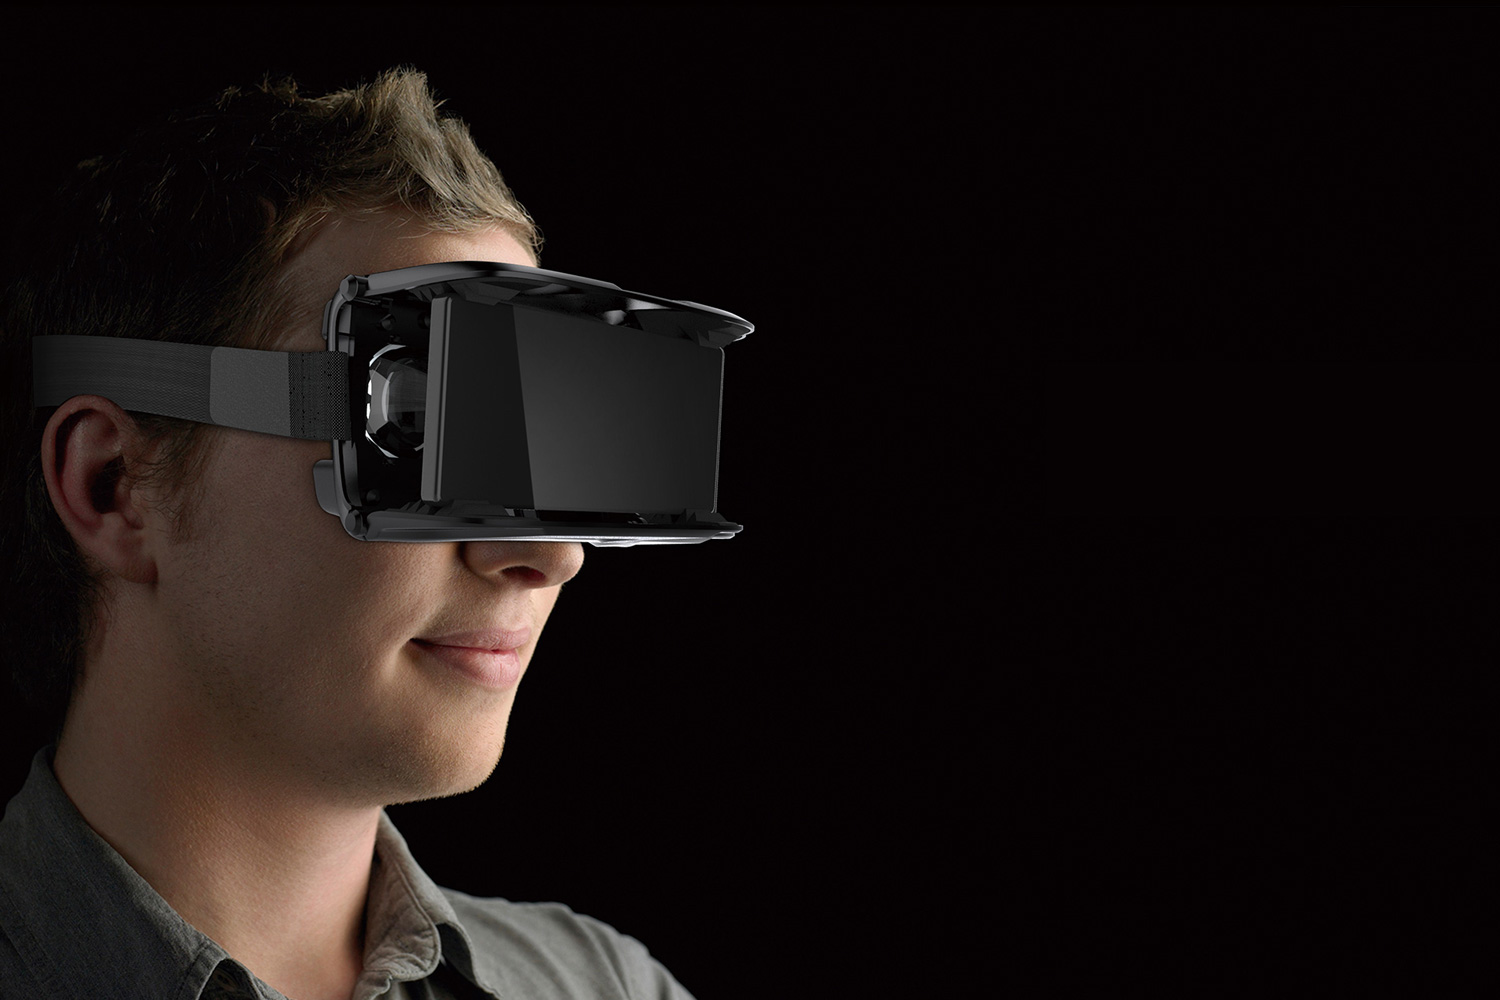 It took Lenovo less than a second to sell 10,000 mobile VR ...